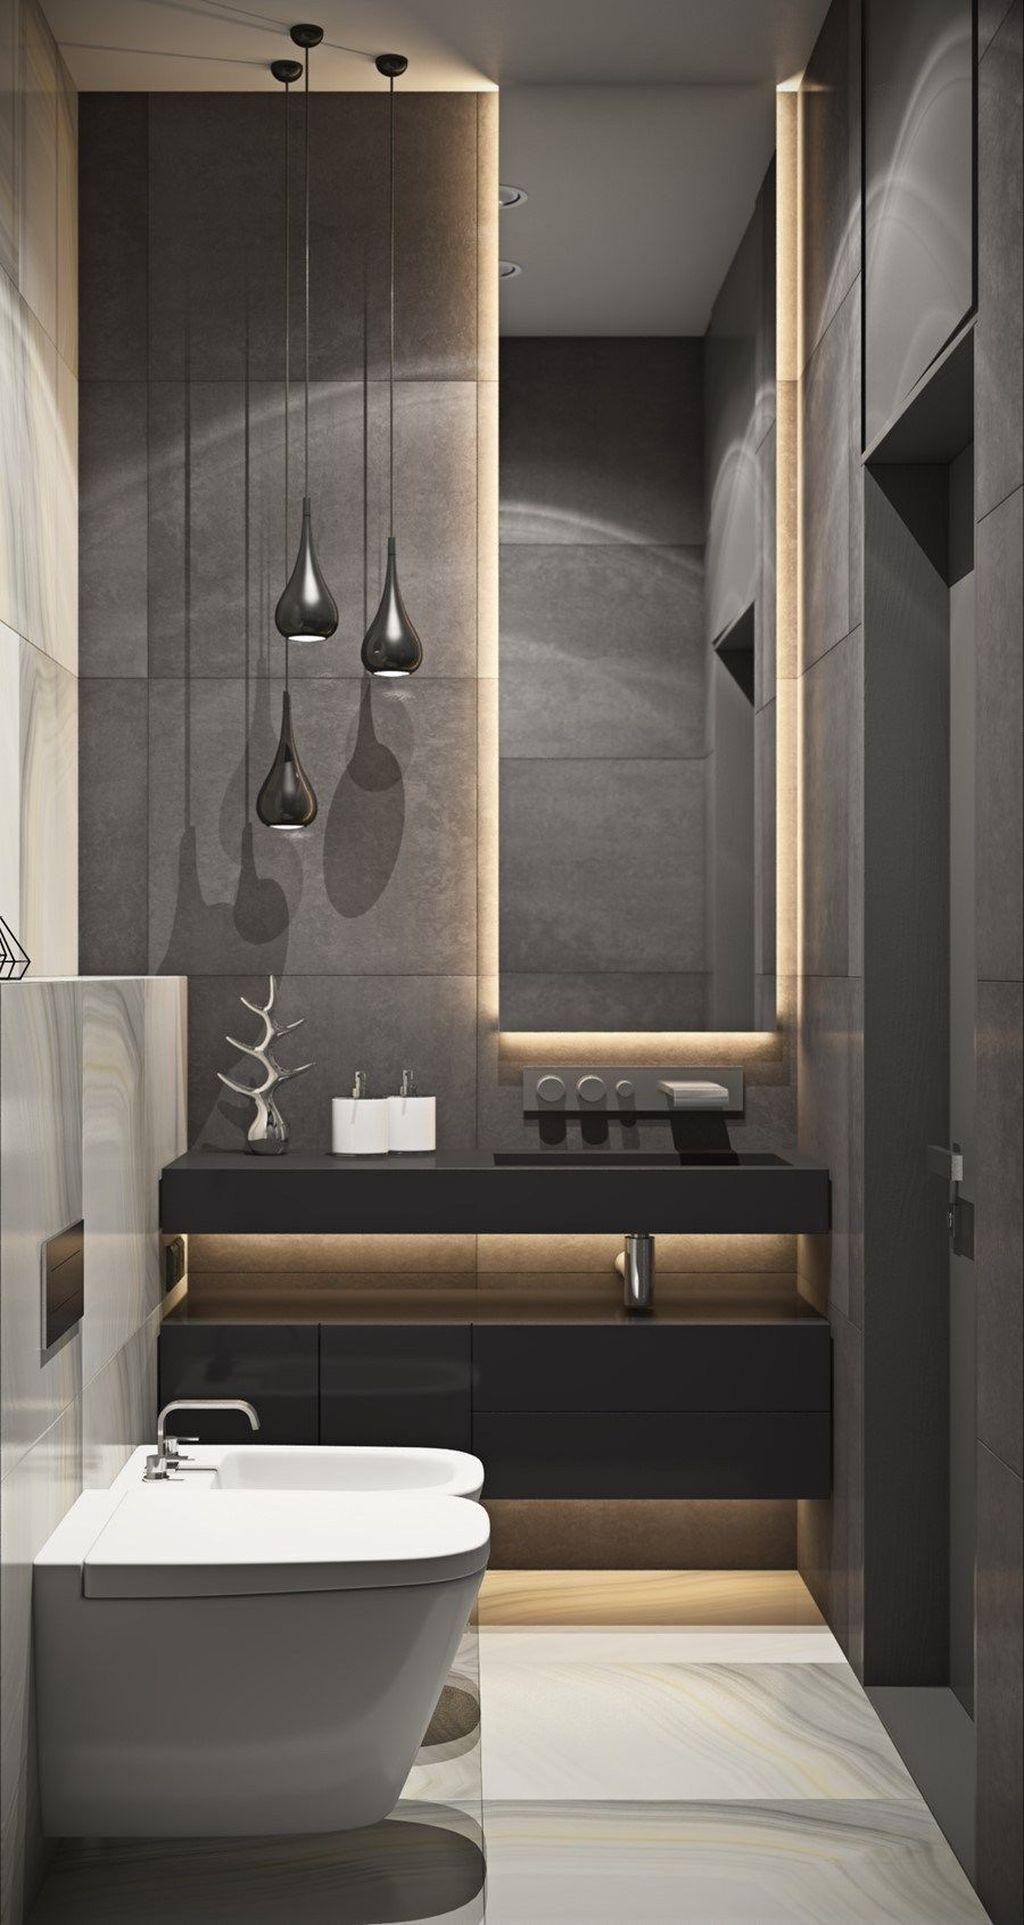 Fascinating Bathroom Ideas For Inspirations 33